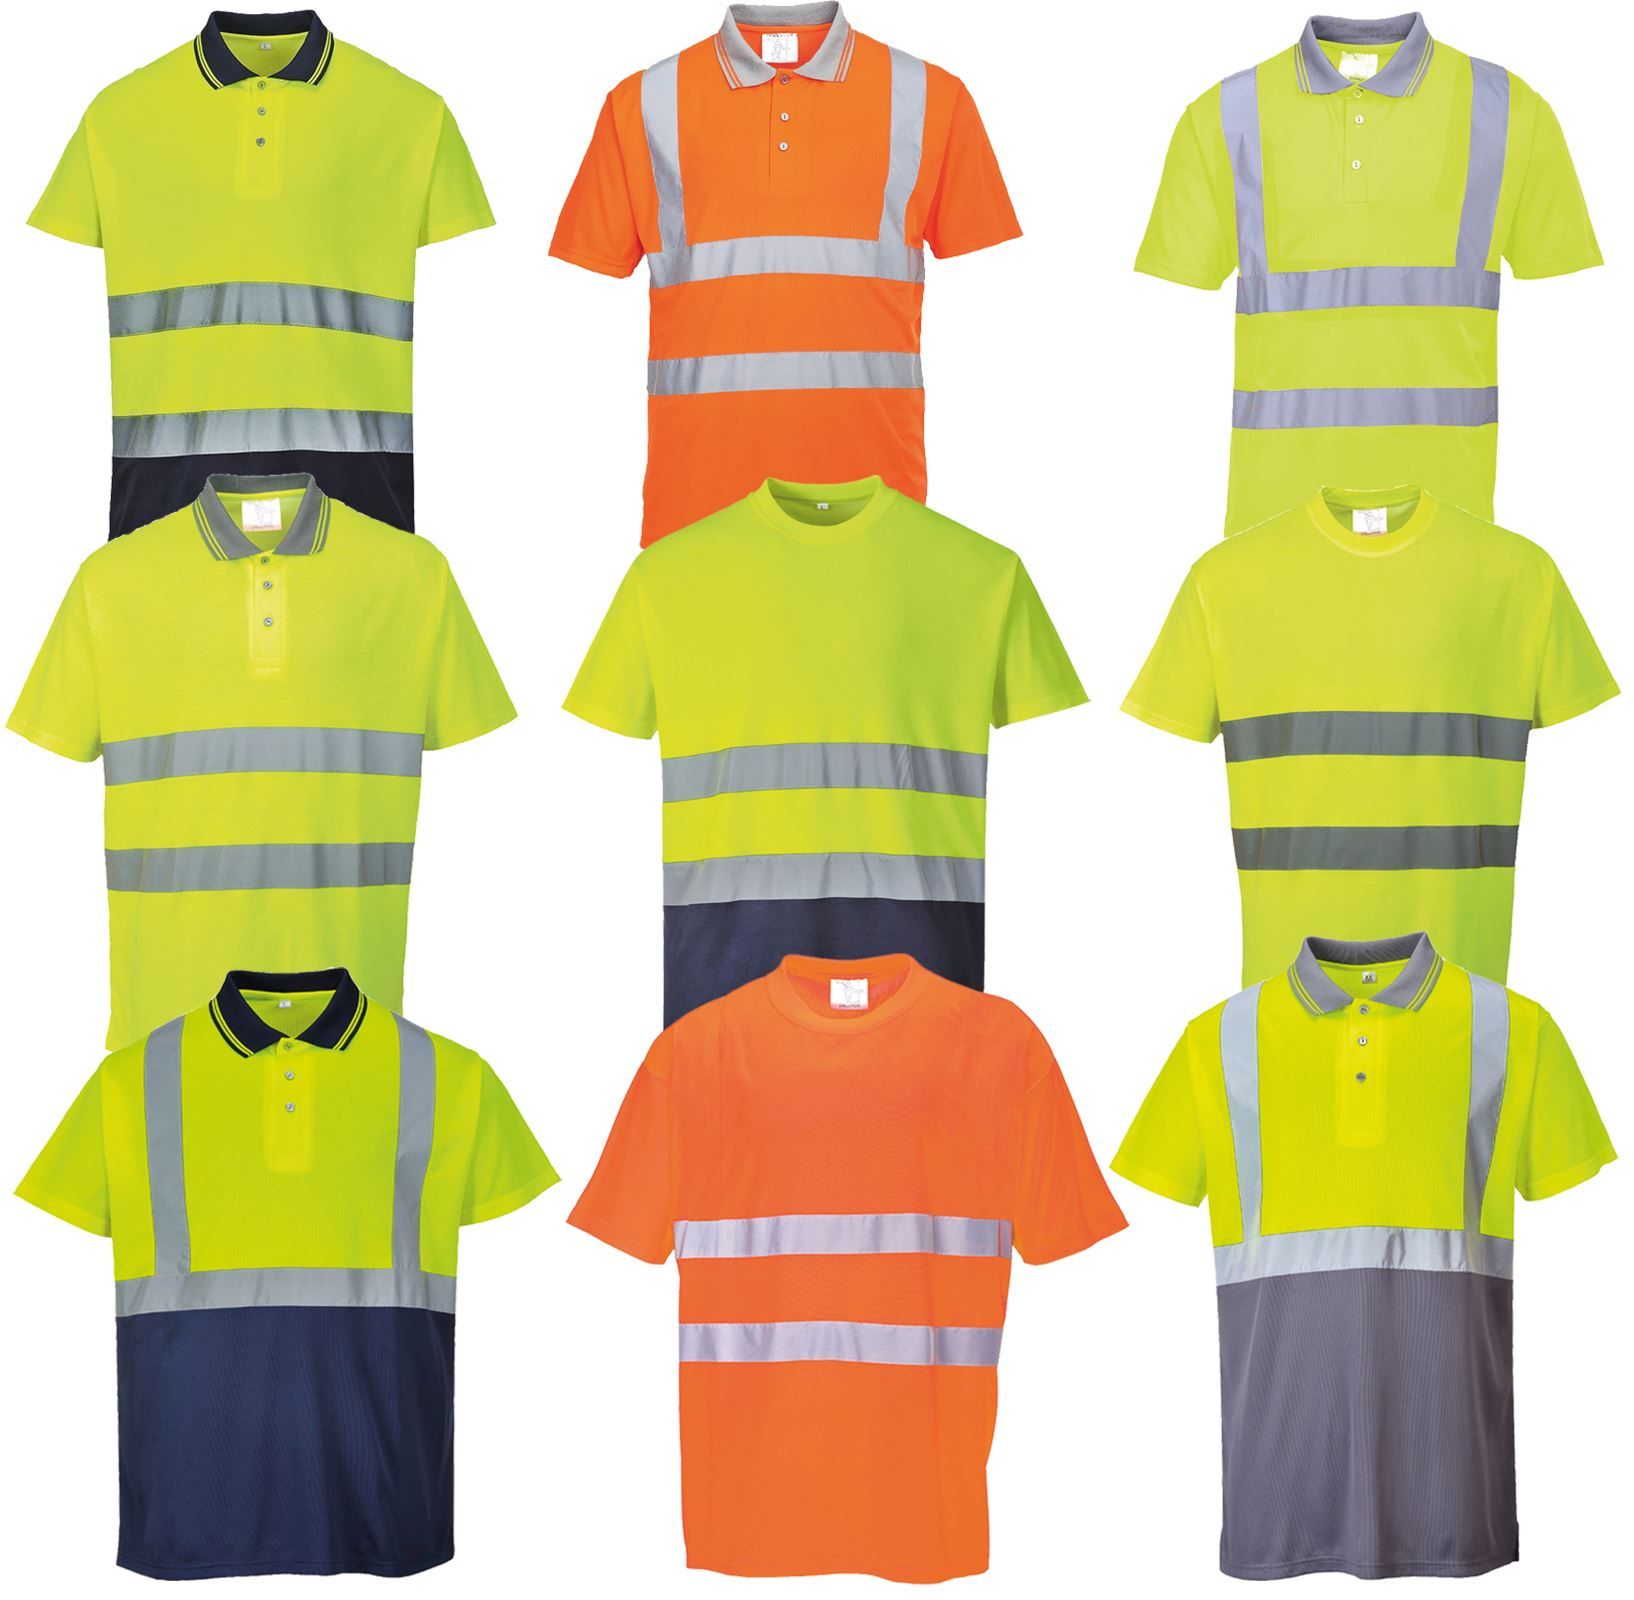 PortWest Mens Polo T Shirt Comfort Two Tone Easy Care Soft Feel Safety T-shirt